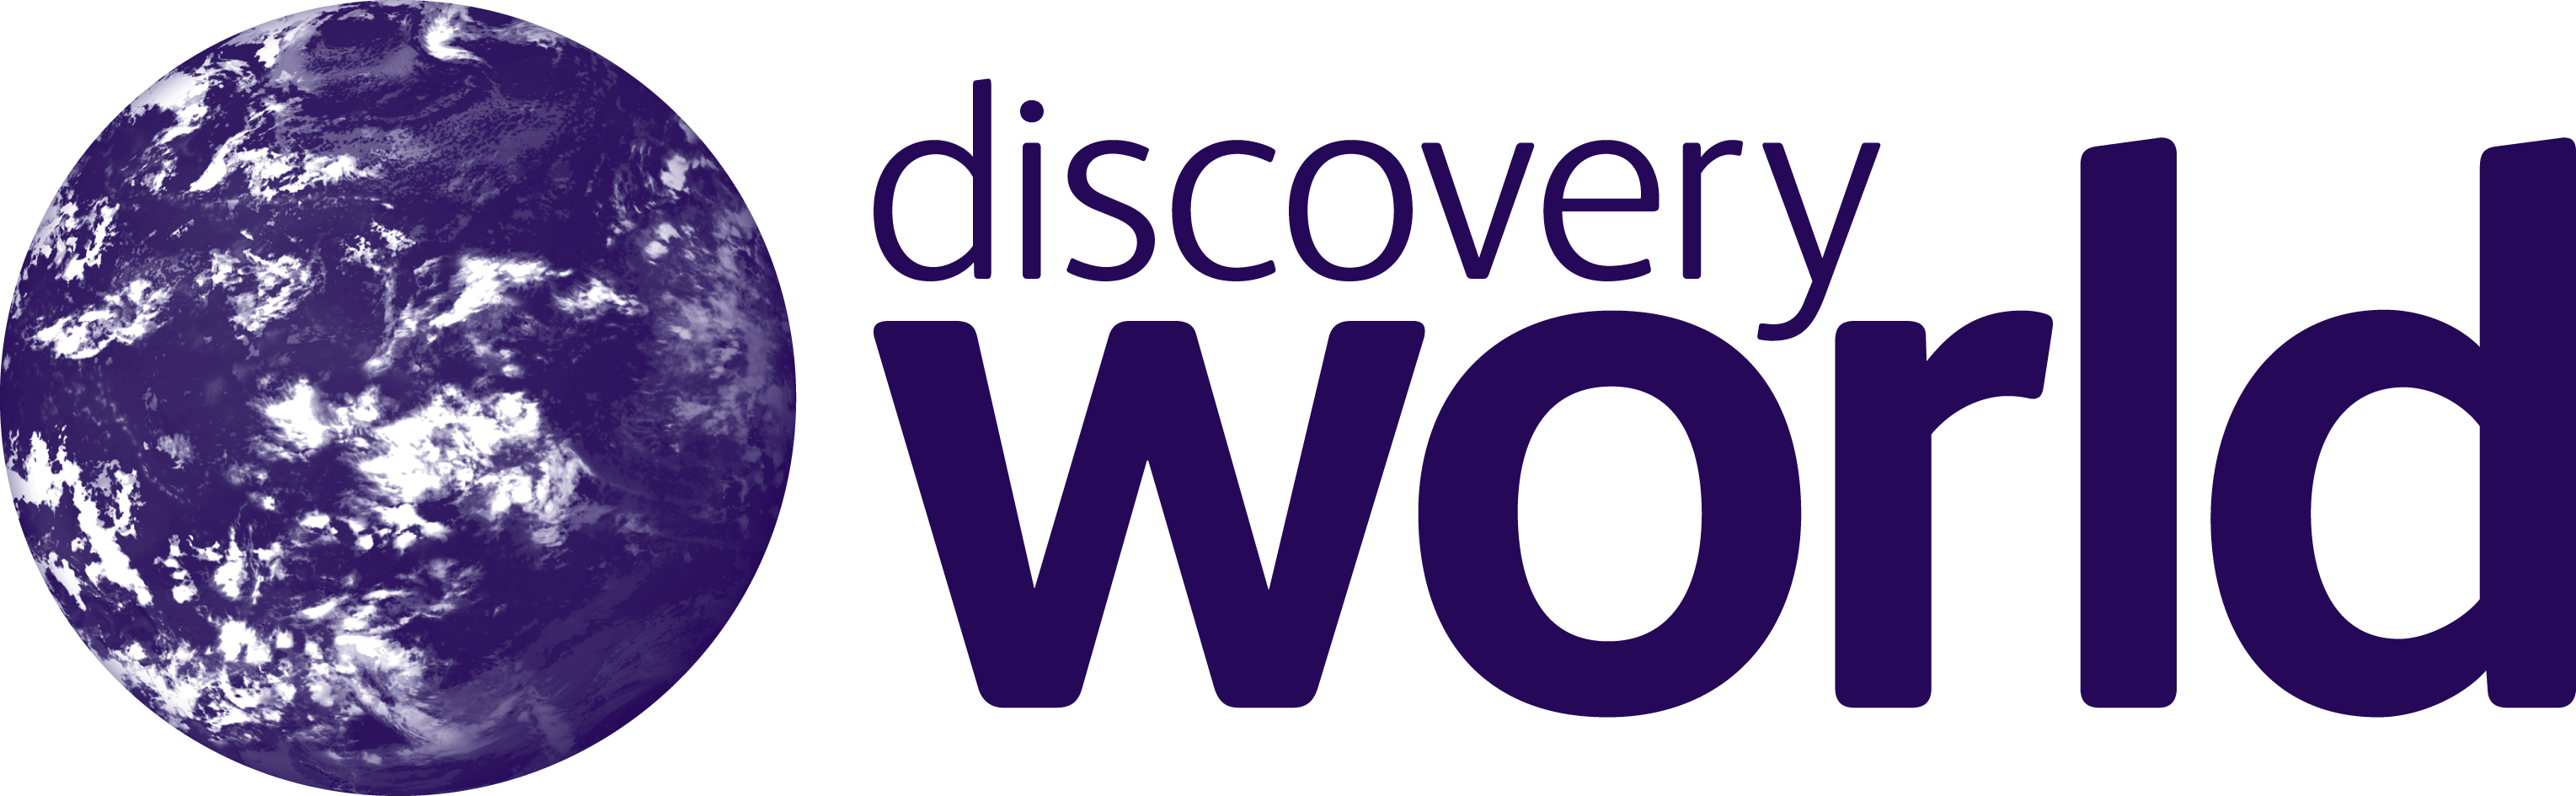 On April 18, 2008, Discovery Civilization in Europe was rebranded as